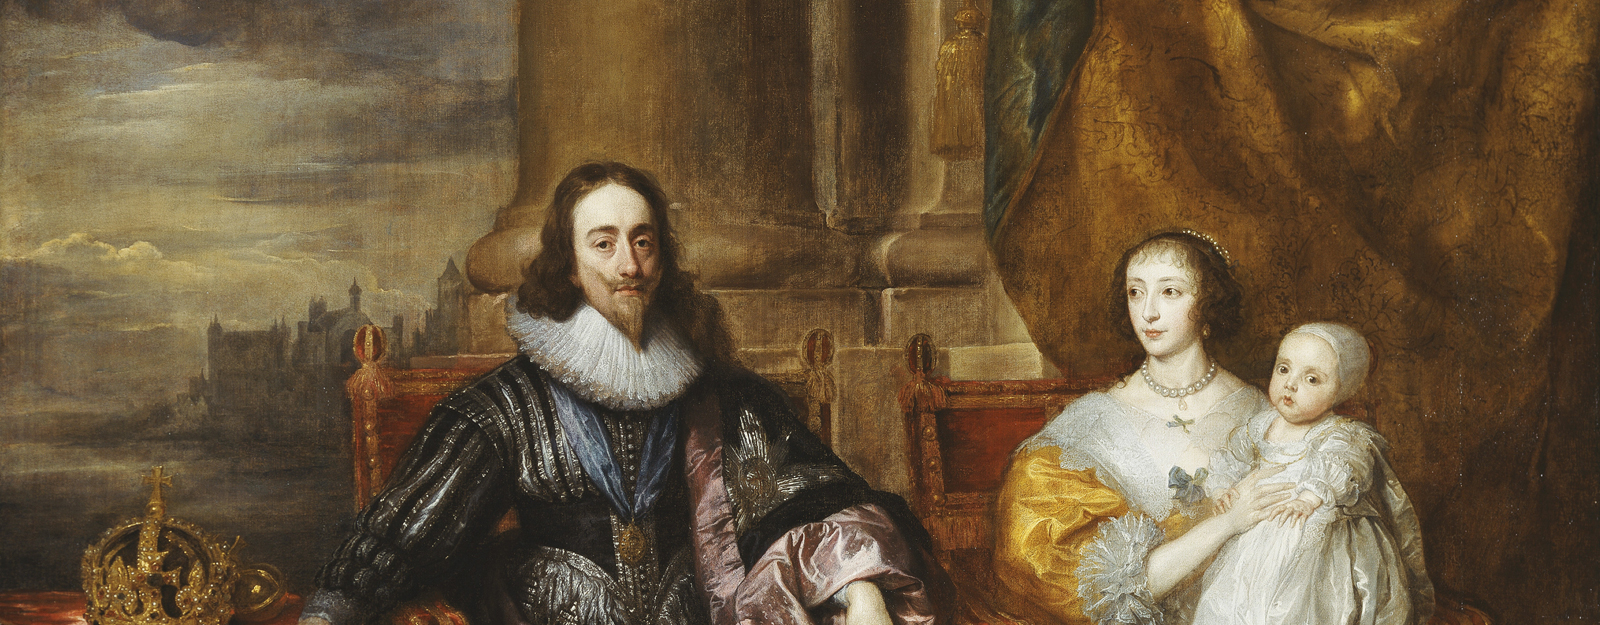 Portrait of Charles I, Henrietta Maria and two children by Sir Anthony Van Dyck